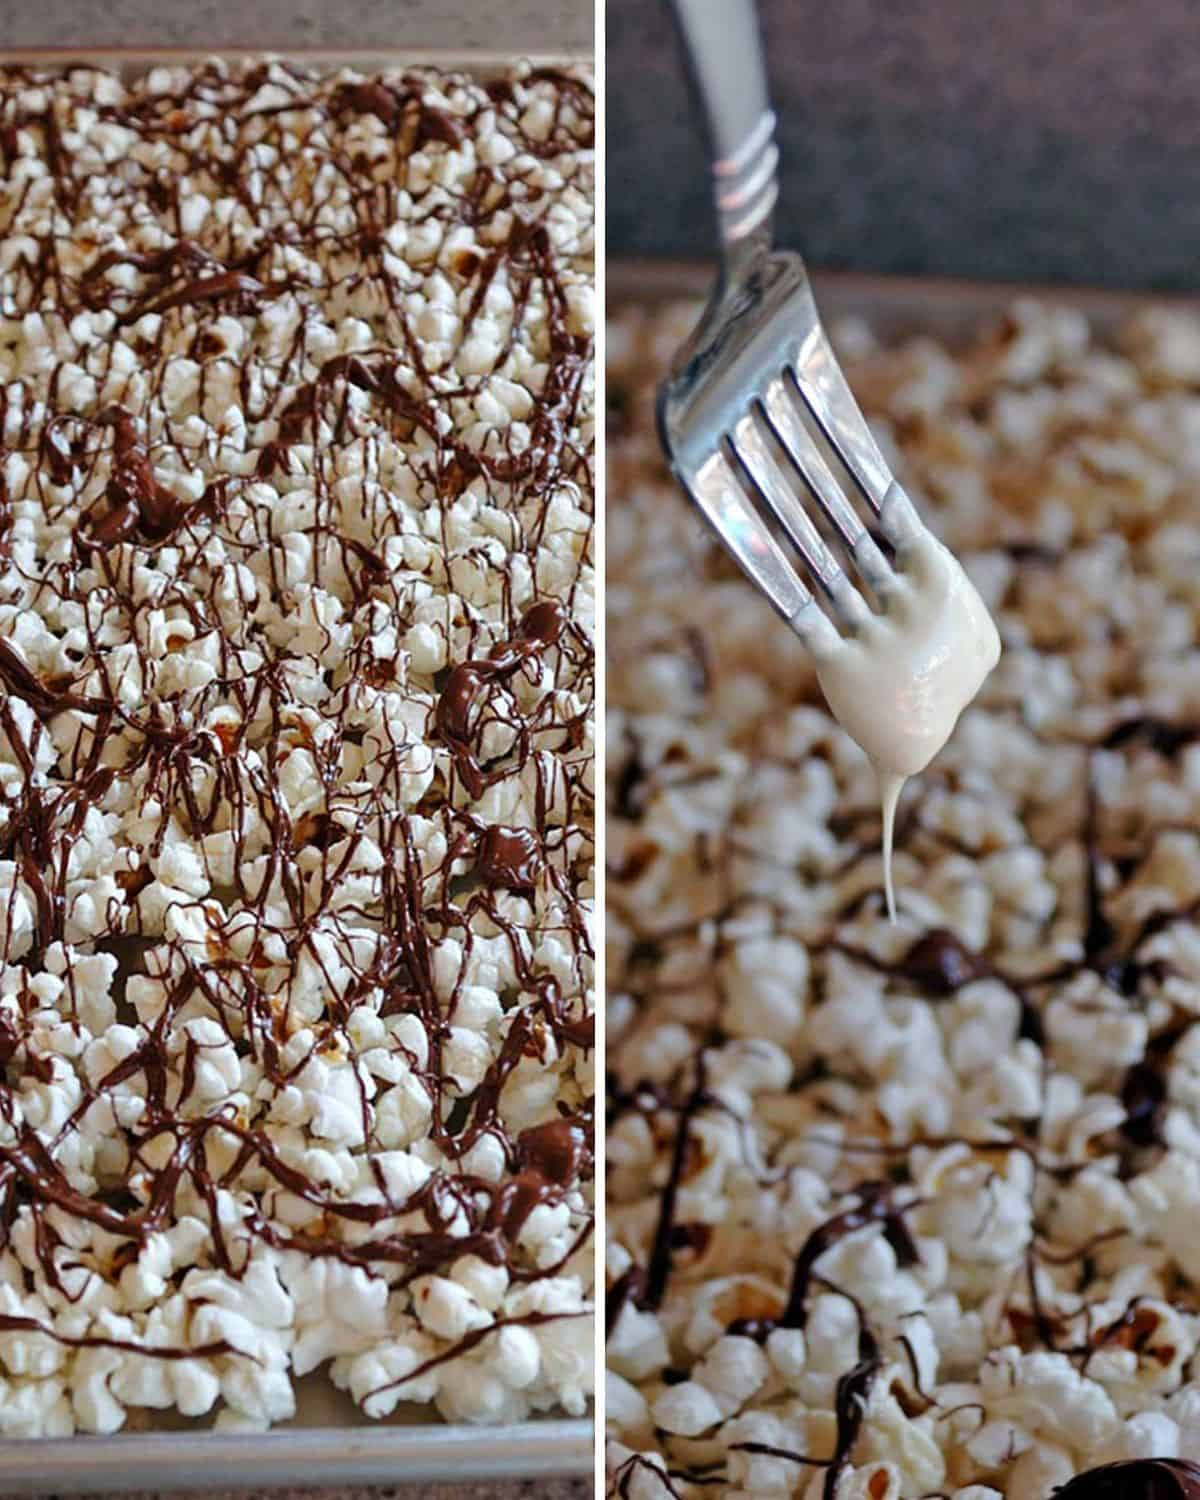 popcorn with dark chocolate drizzles, fork drizzling white chocolate over popcorn